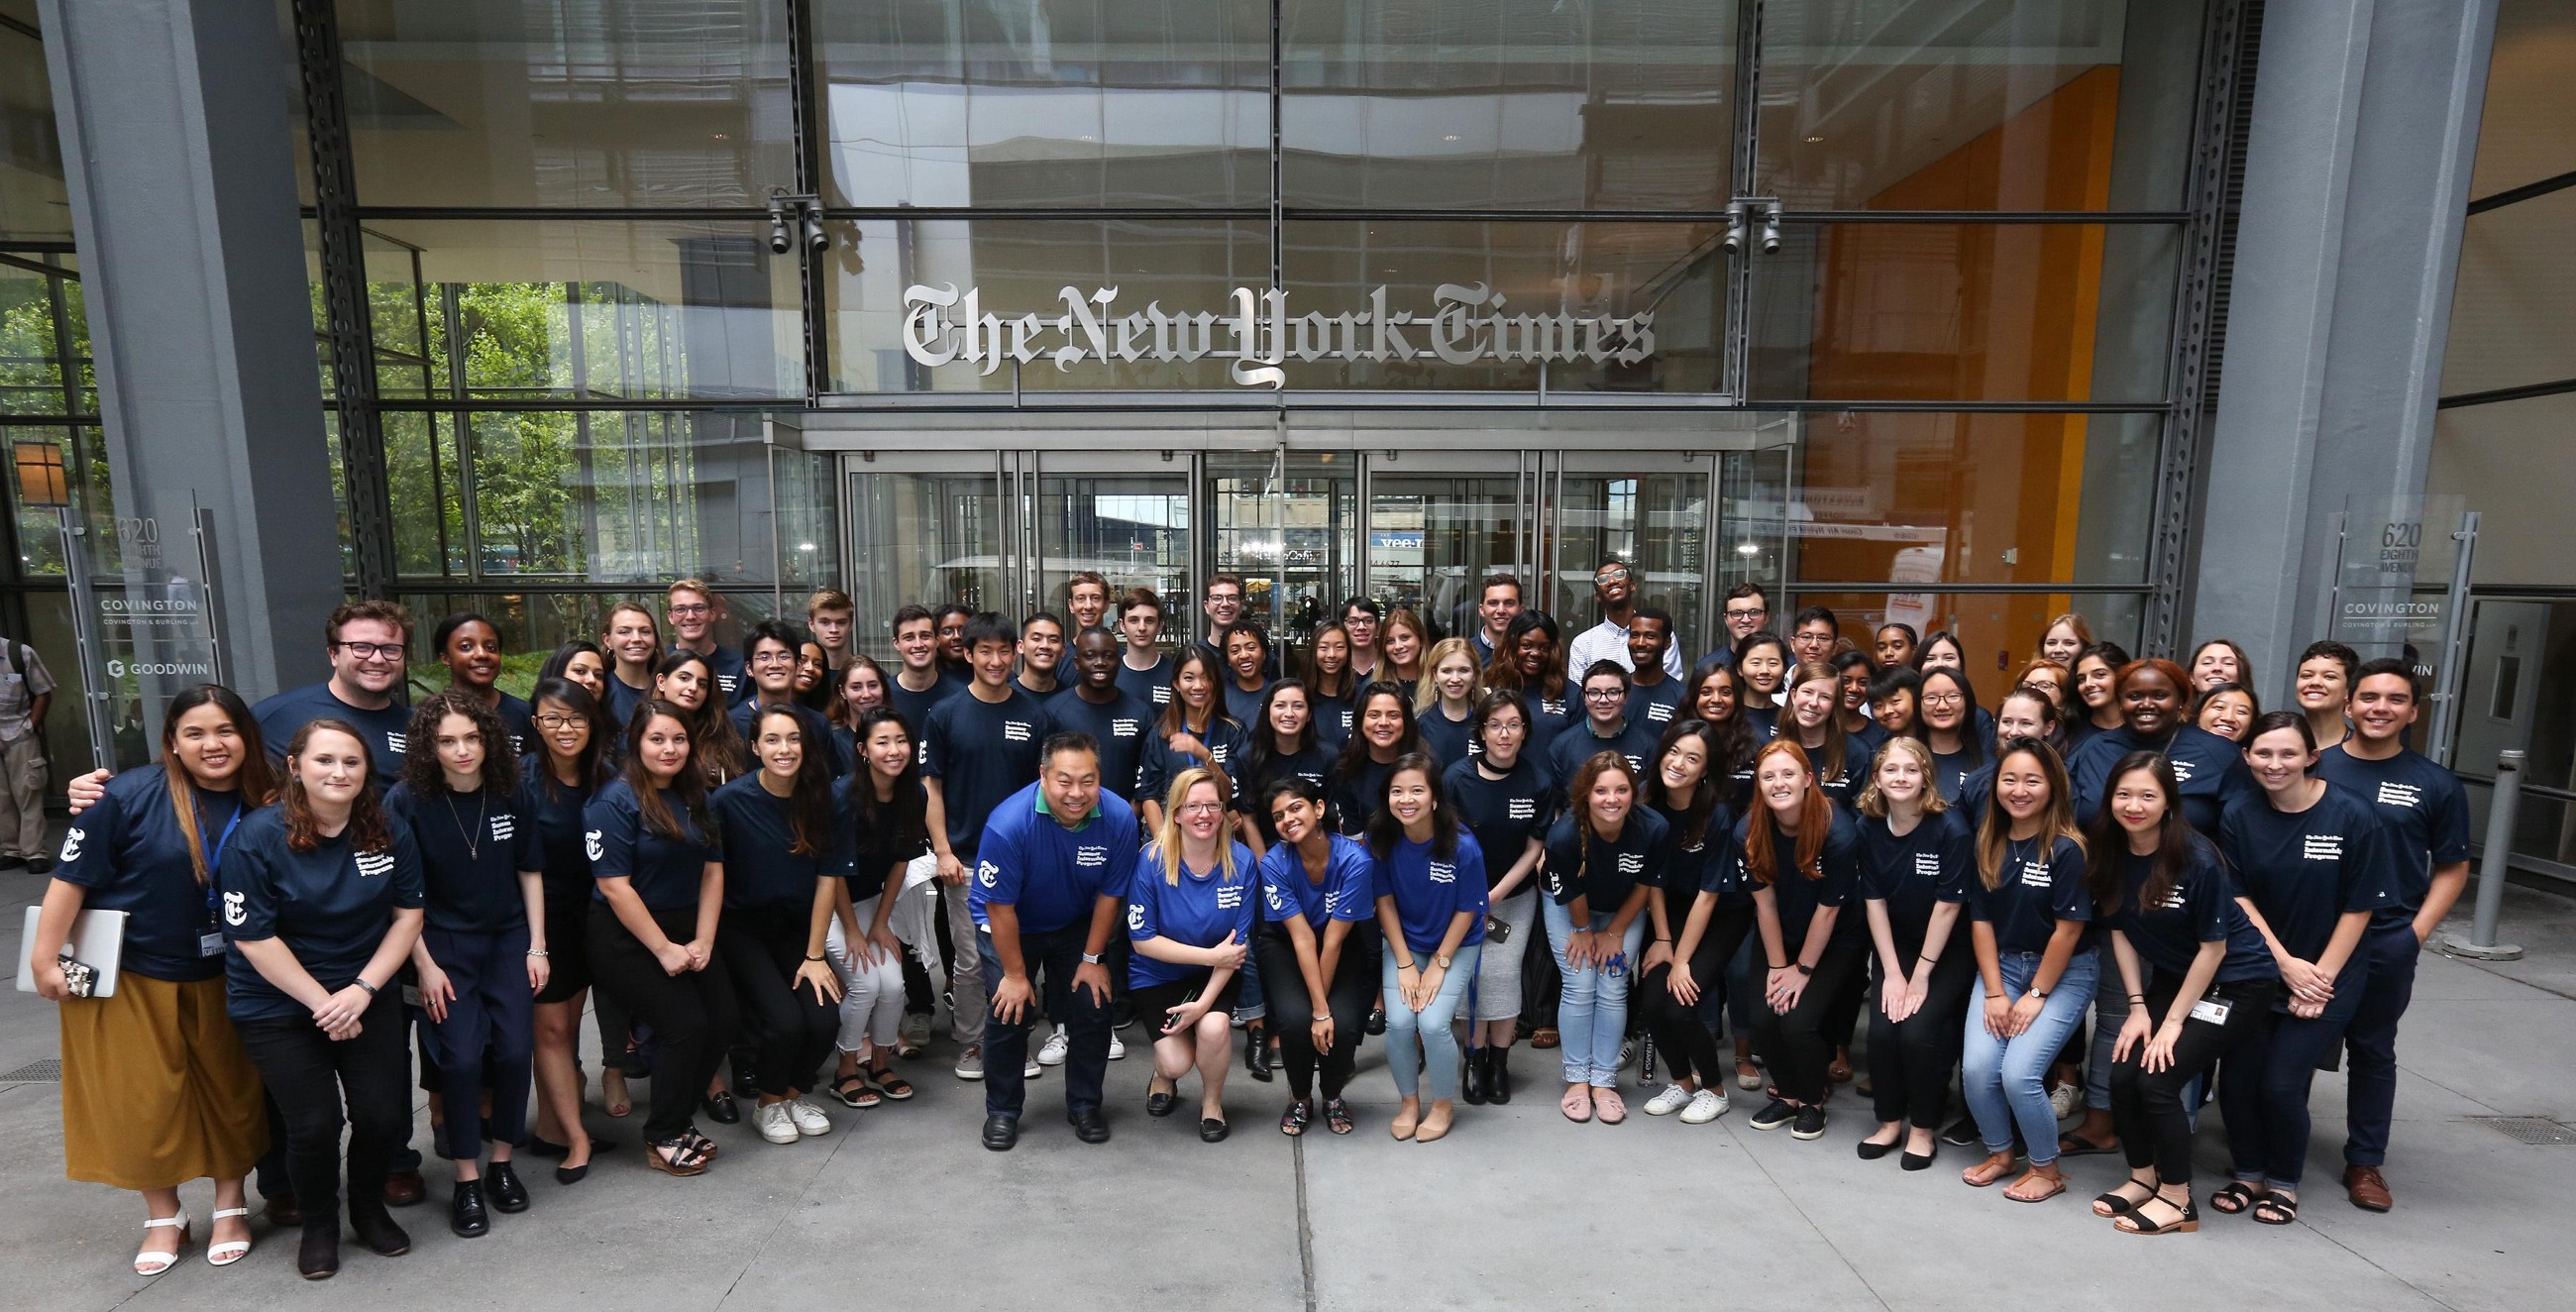 At Last New York Times Gets Serious >> How The New York Times Rebranded The Internship Program To Attract